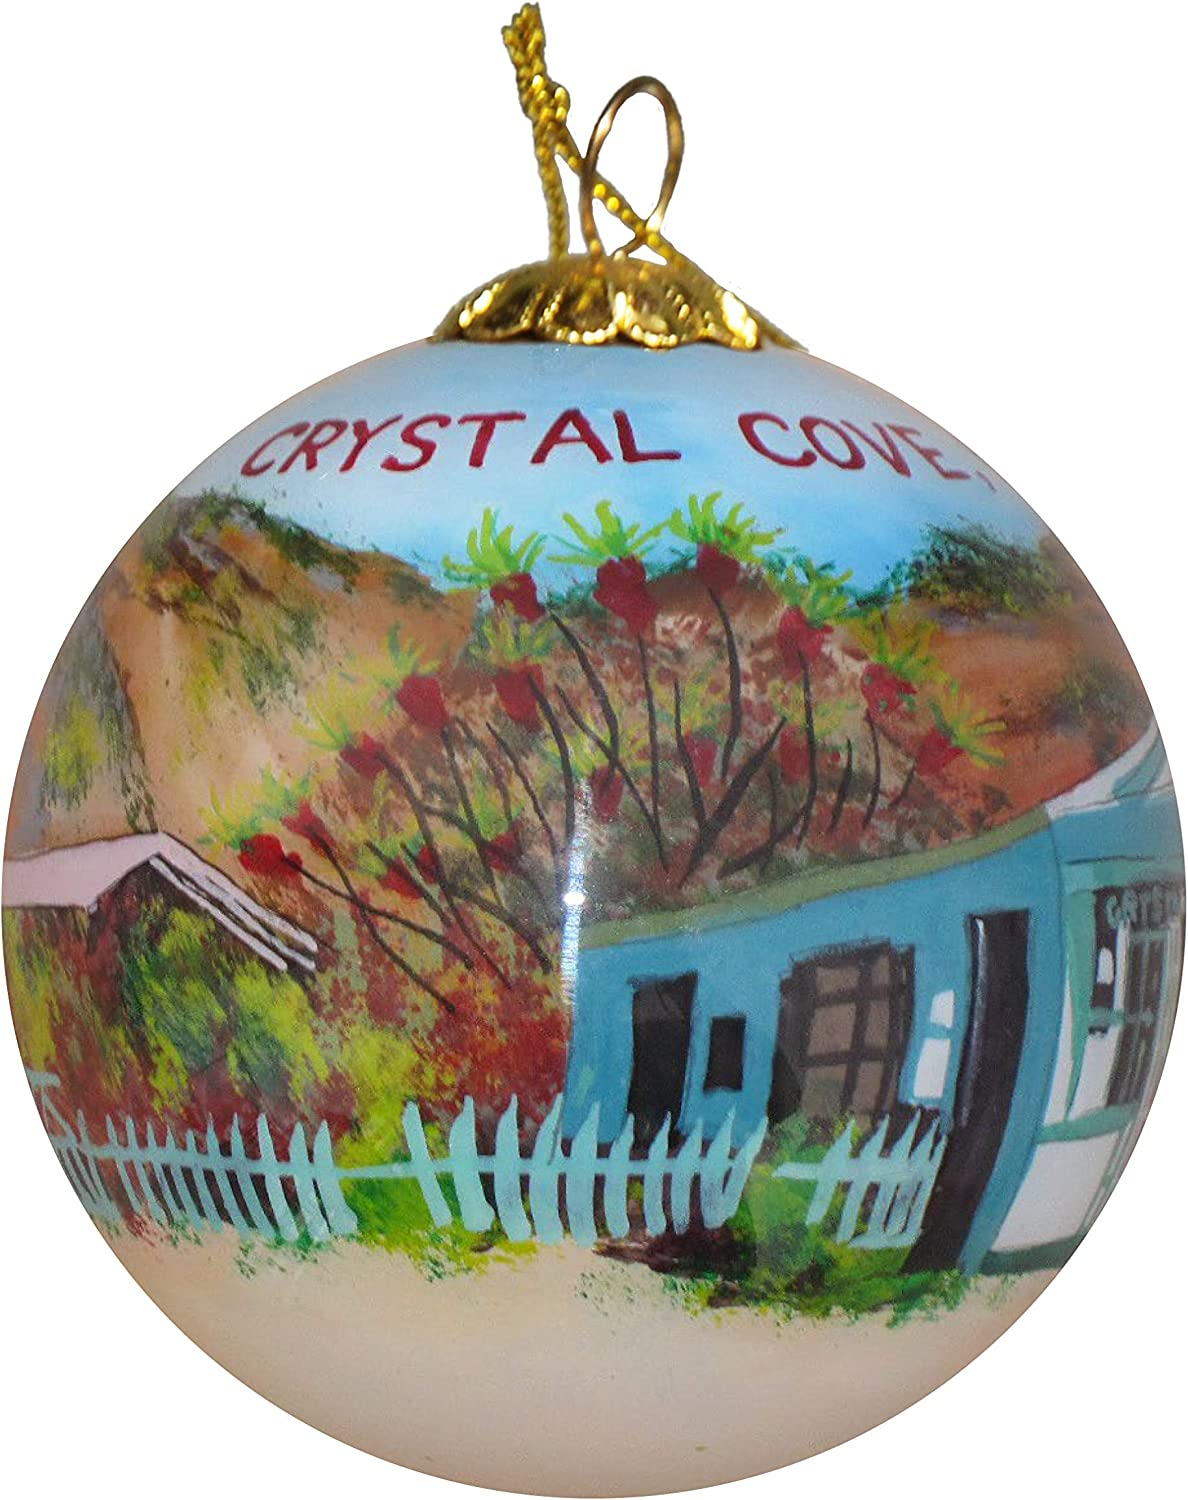 Art Studio Company Hand Painted Glass Christmas Ornament - Beach Cottages in Crystal Cove, CA